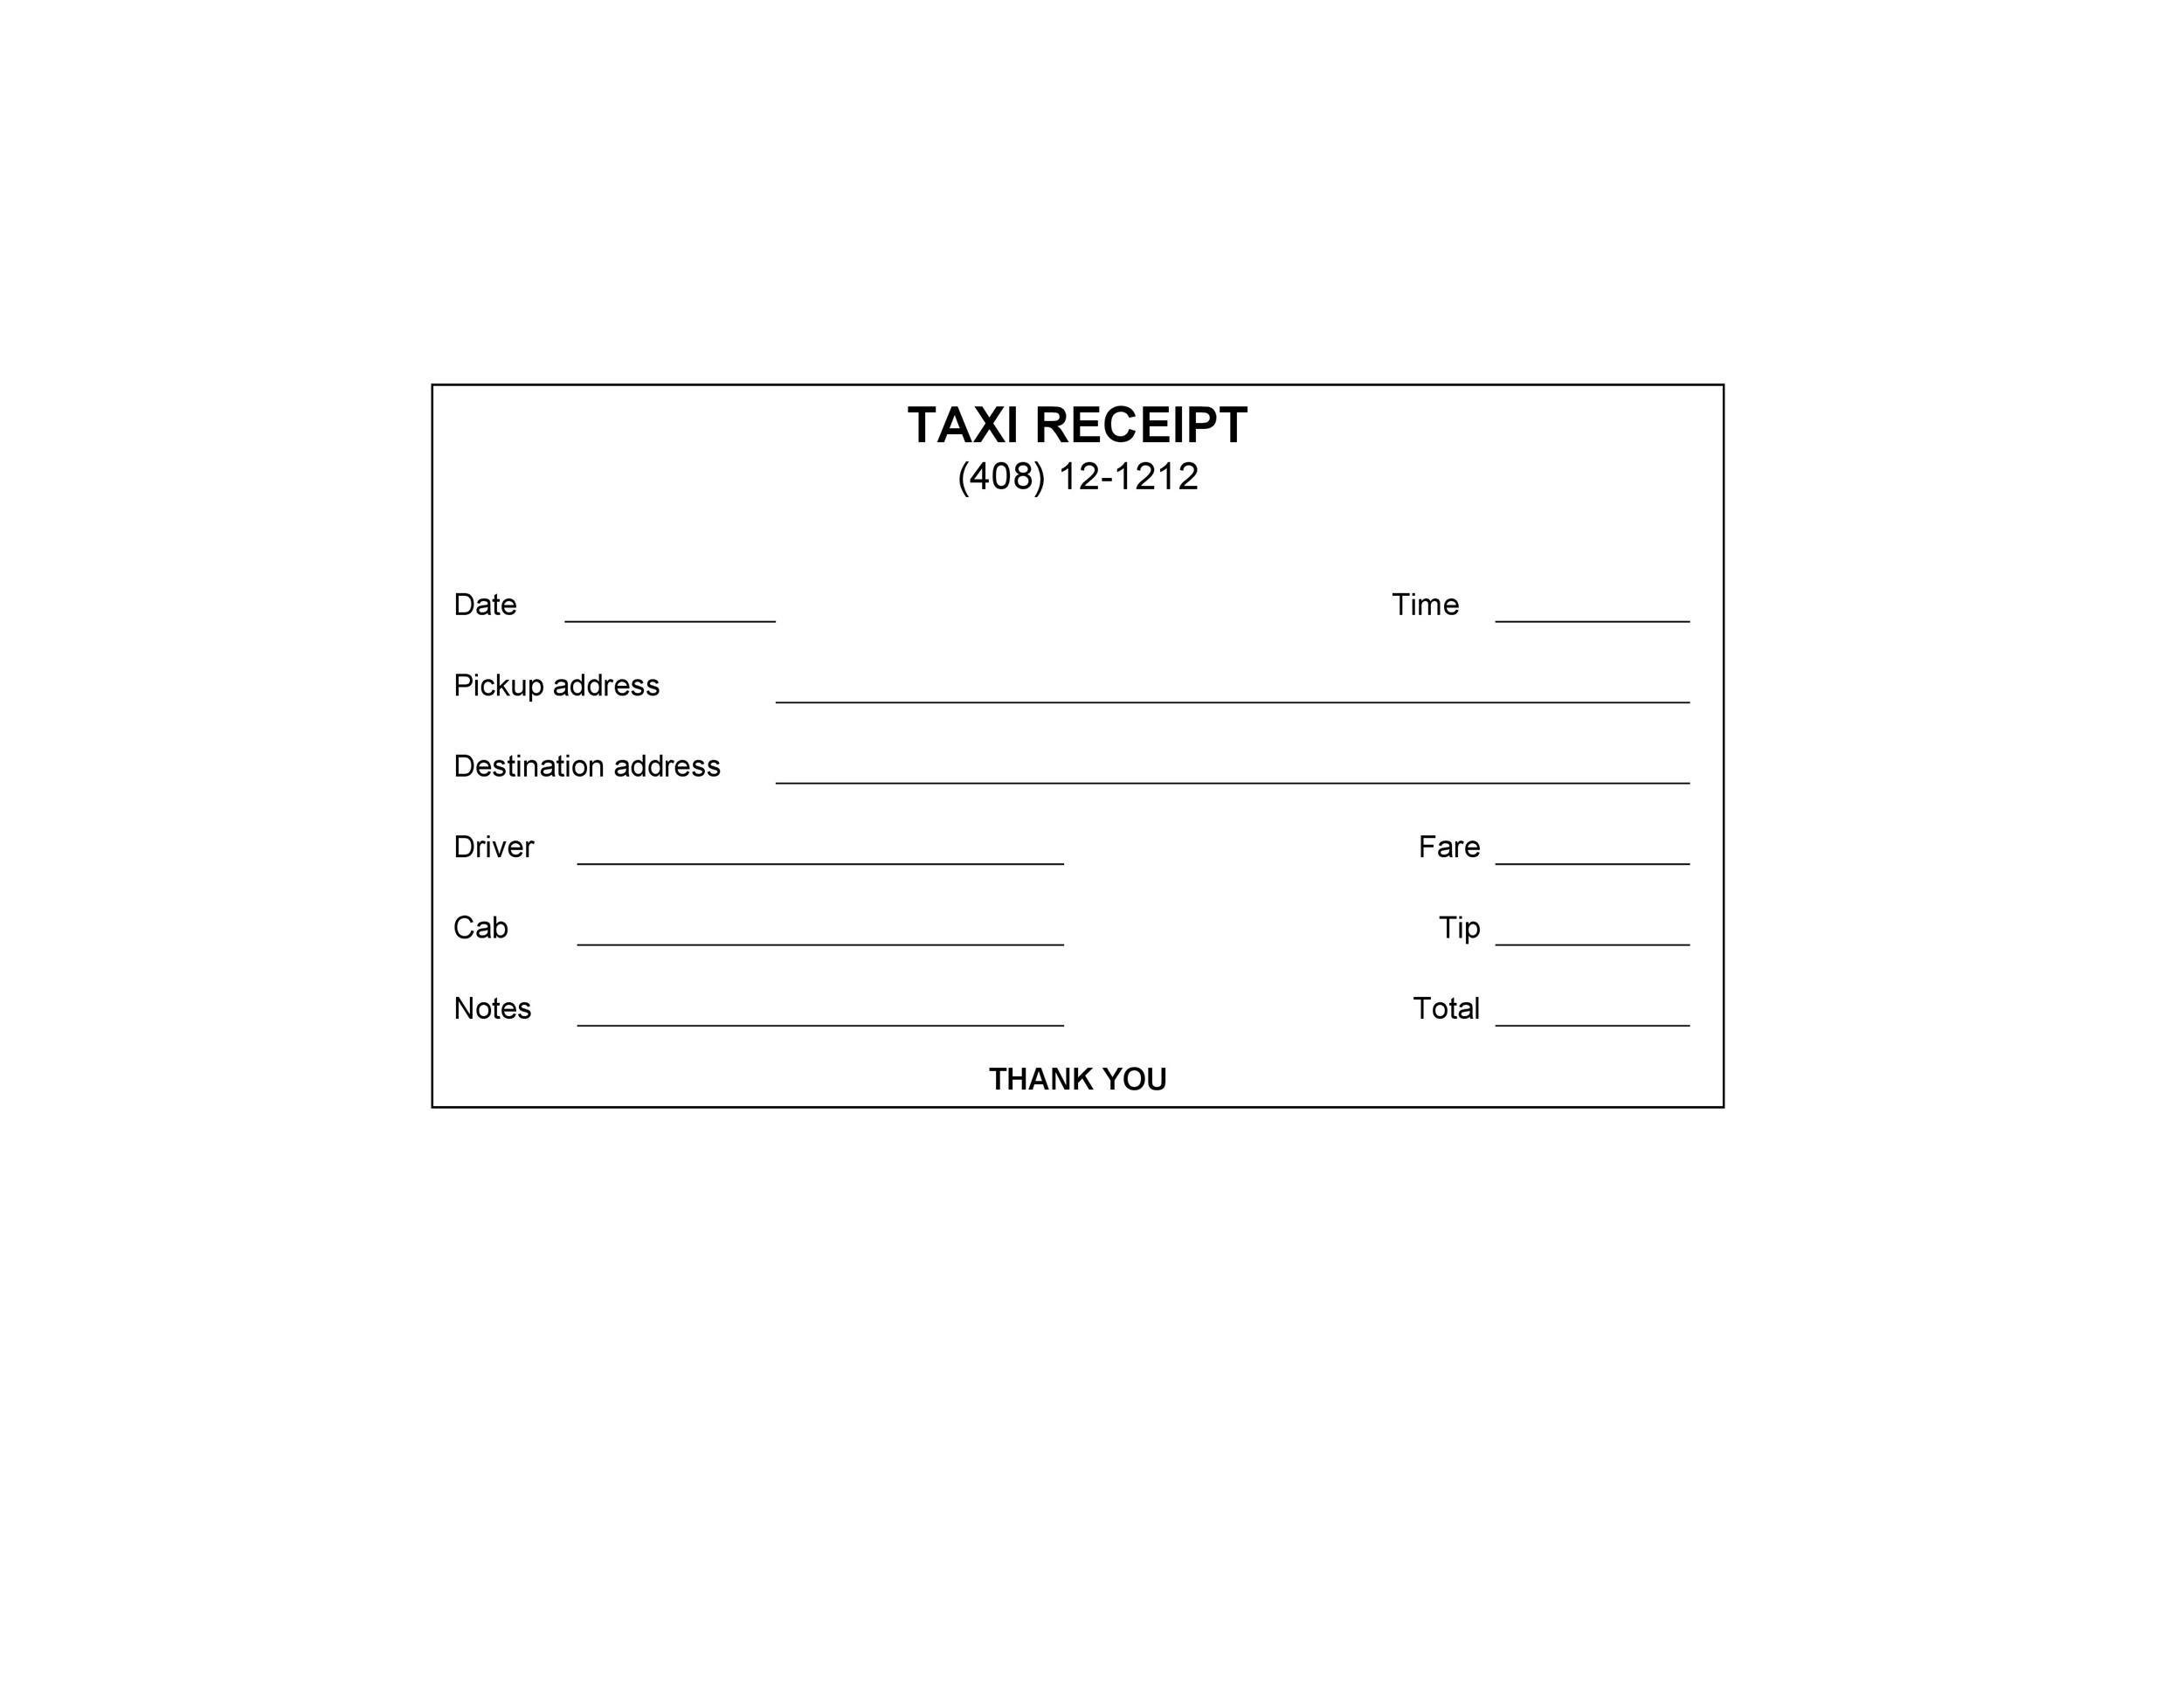 50+ free receipt templates (cash, sales, donation, taxi), Invoice templates